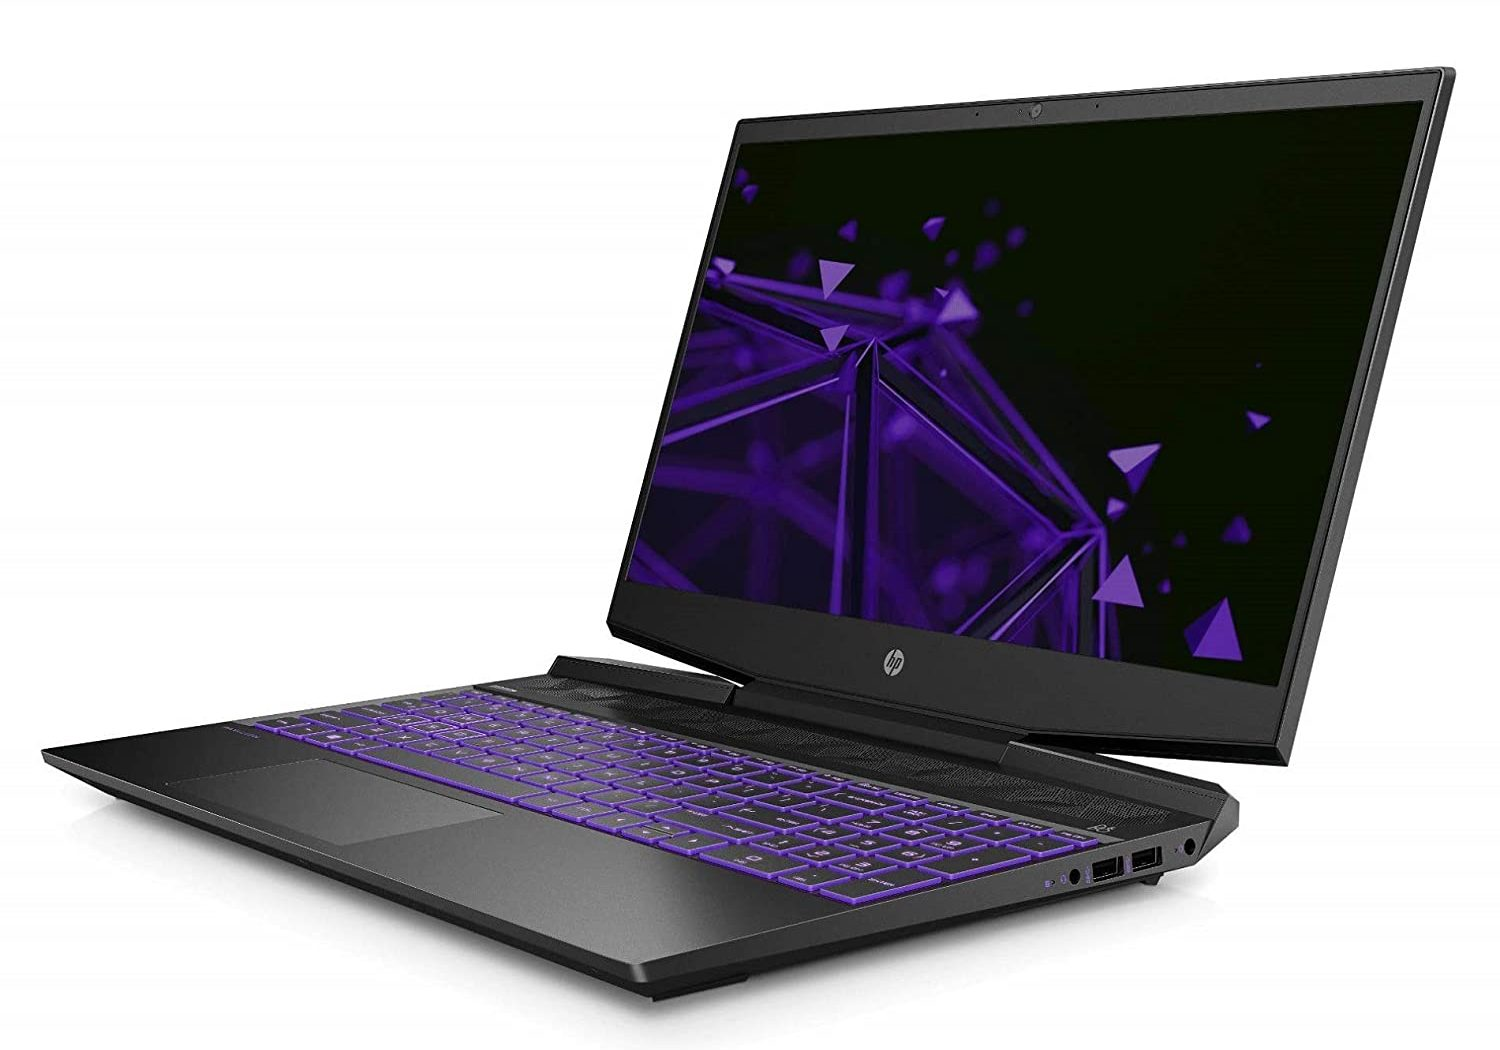 HP Pavilion Gaming 15-dk0049TX-best gaming laptop under 80000 in India 2020 with i7 processor